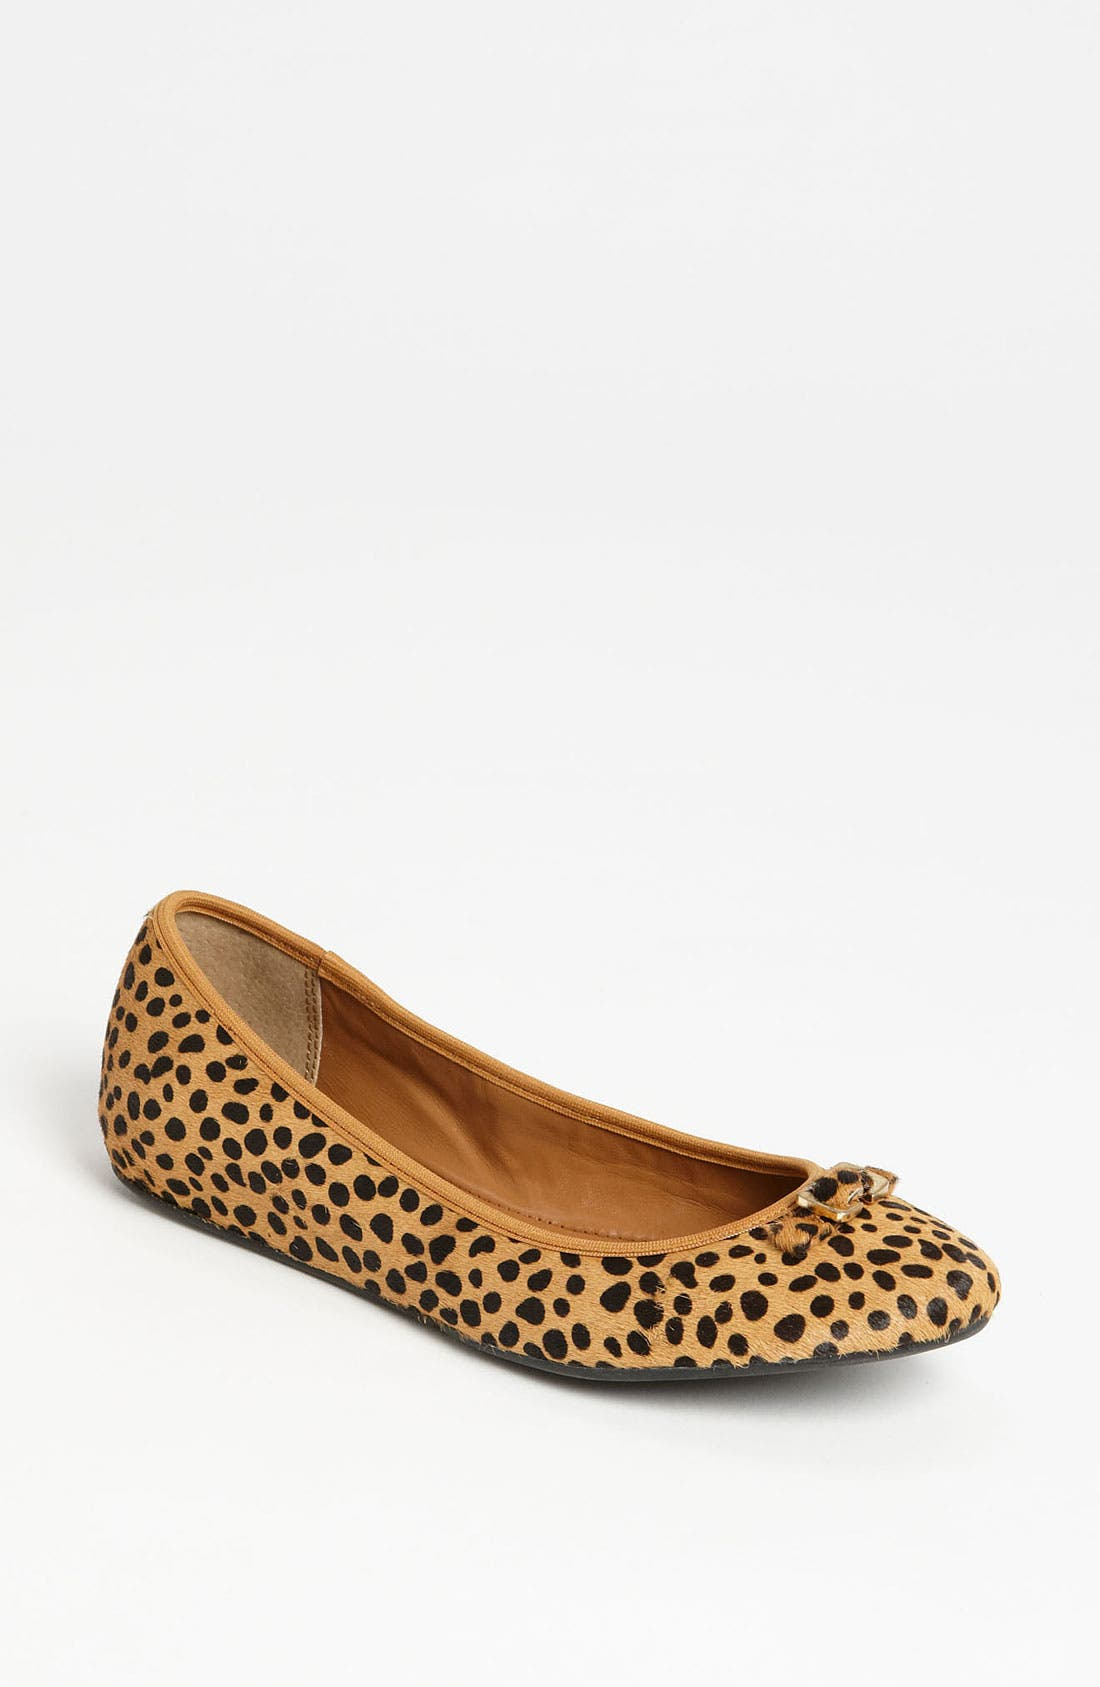 Alternate Image 1 Selected - Diane von Furstenberg 'Bion' Skimmer Flat (Online Only)